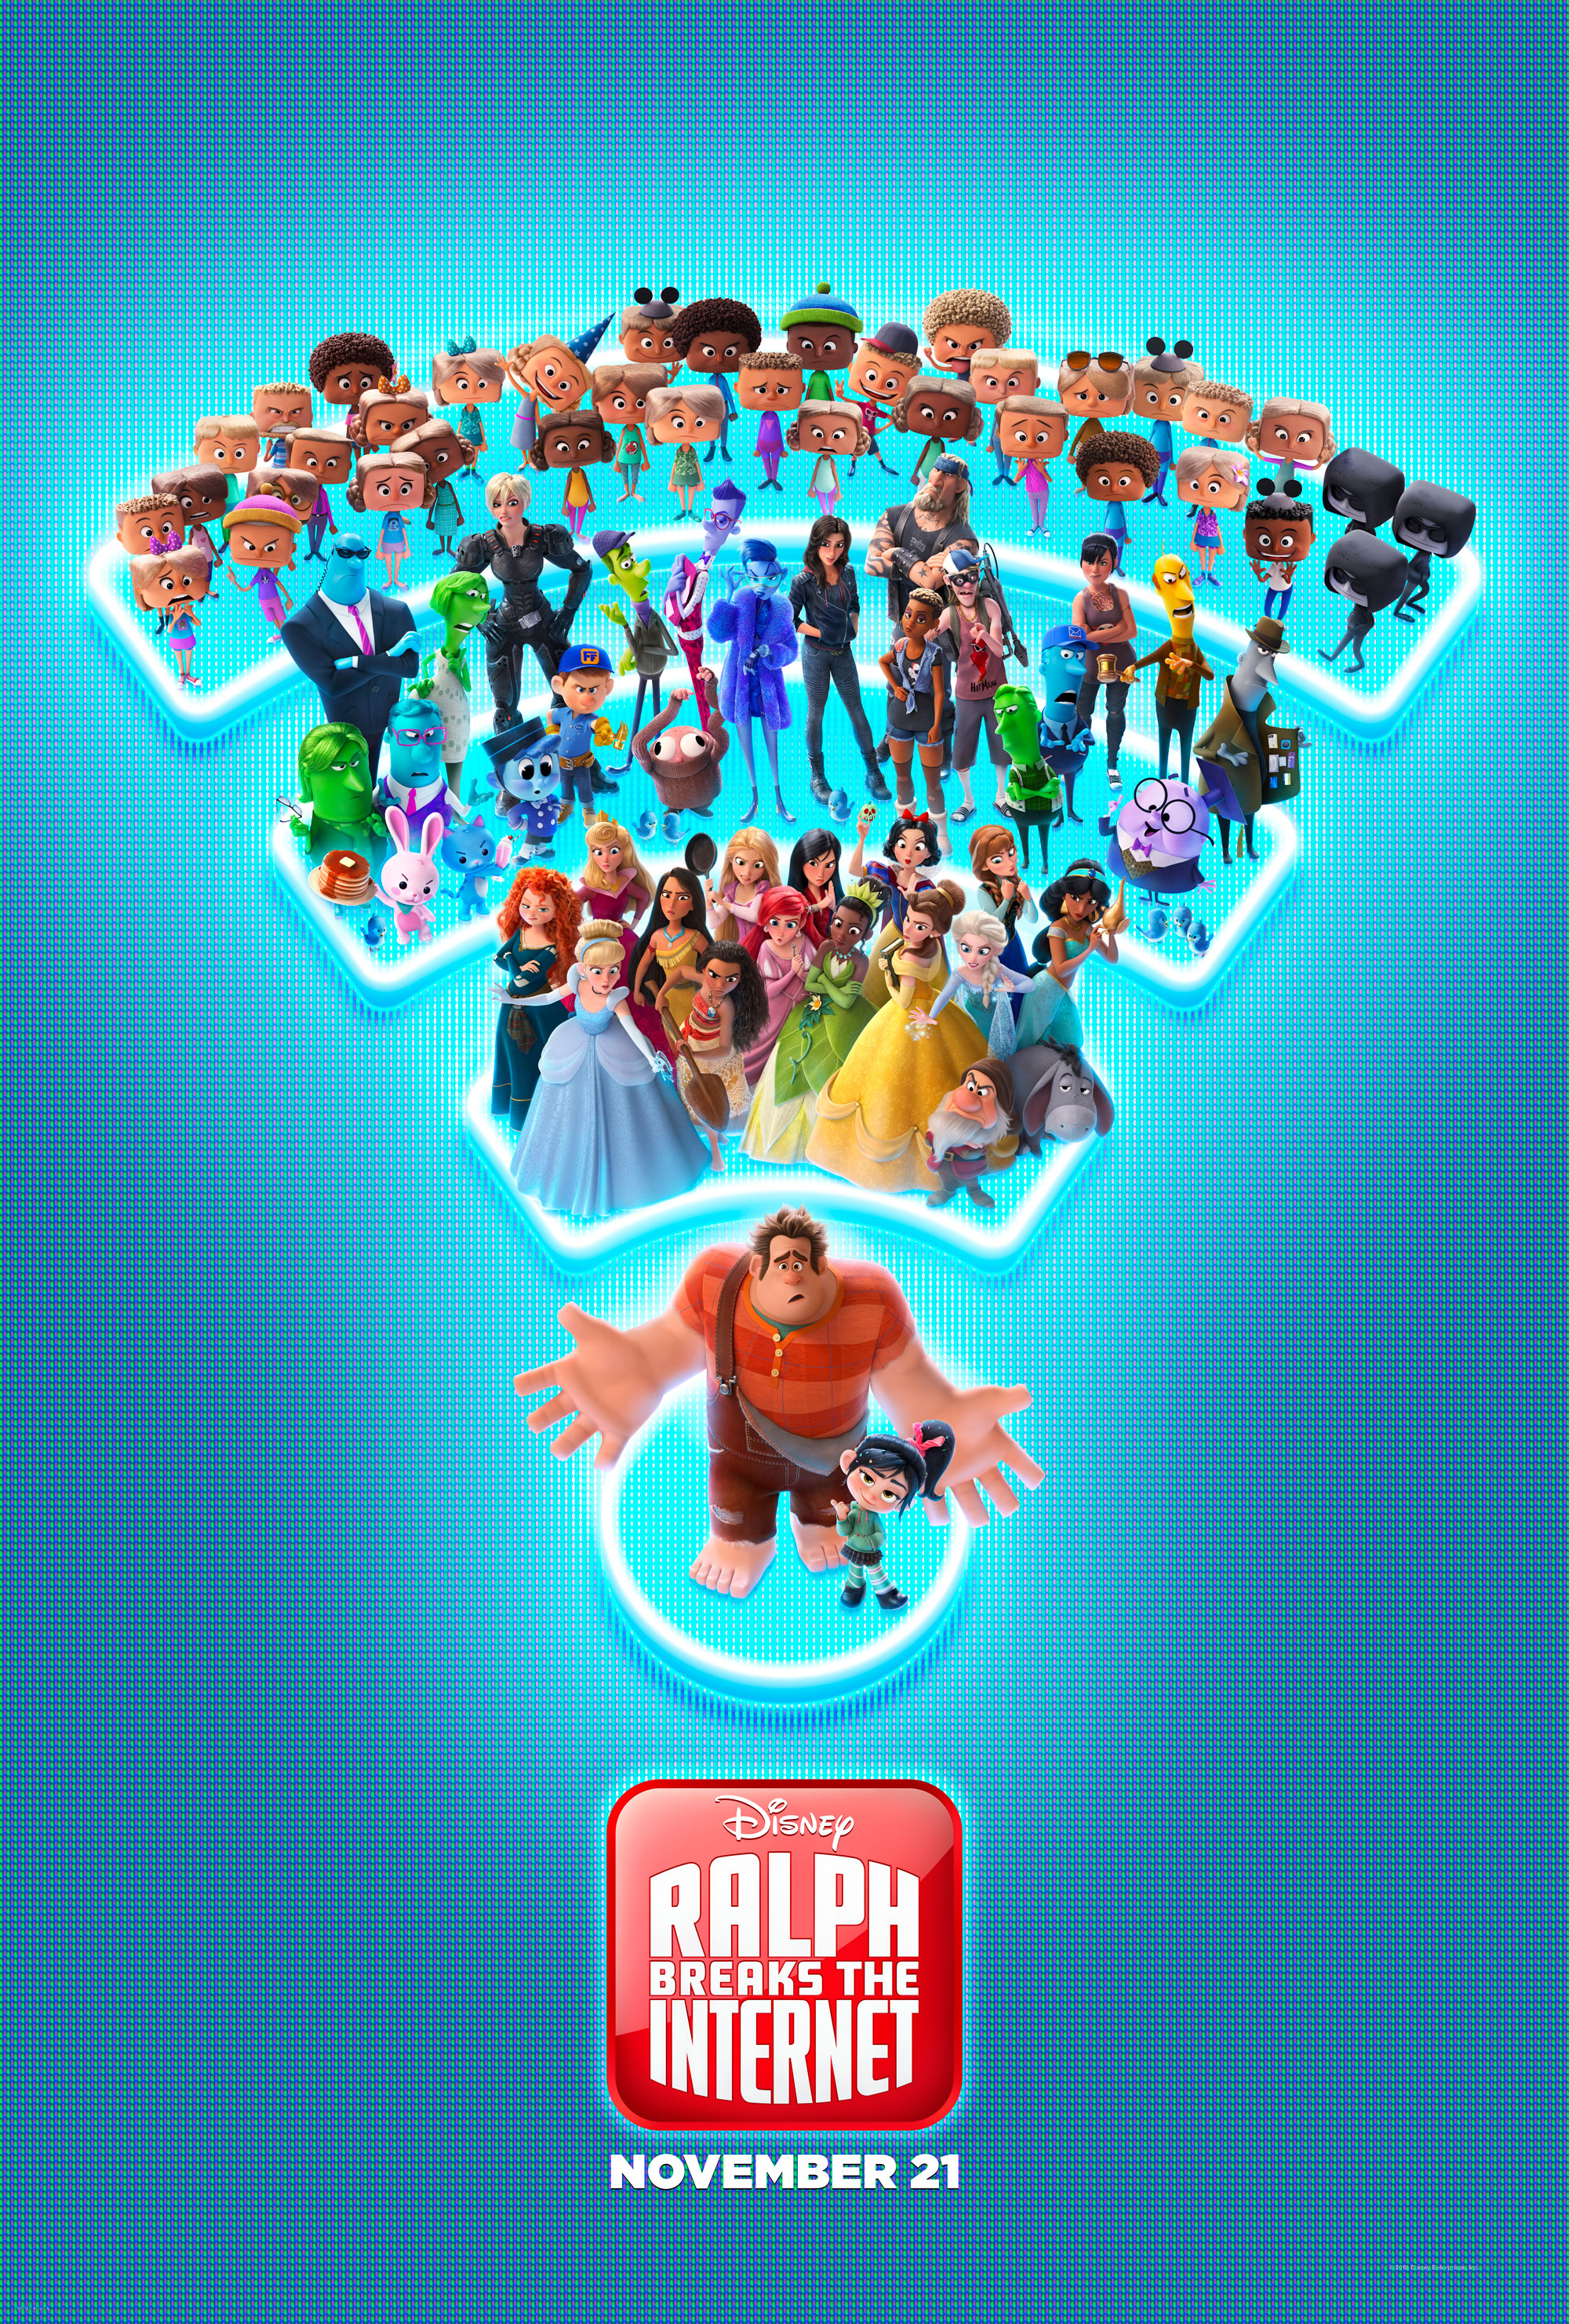 """Celebrate #InternetDay with an All-New Clip from """"Ralph Breaks the Internet"""" coming to Theaters November 21"""